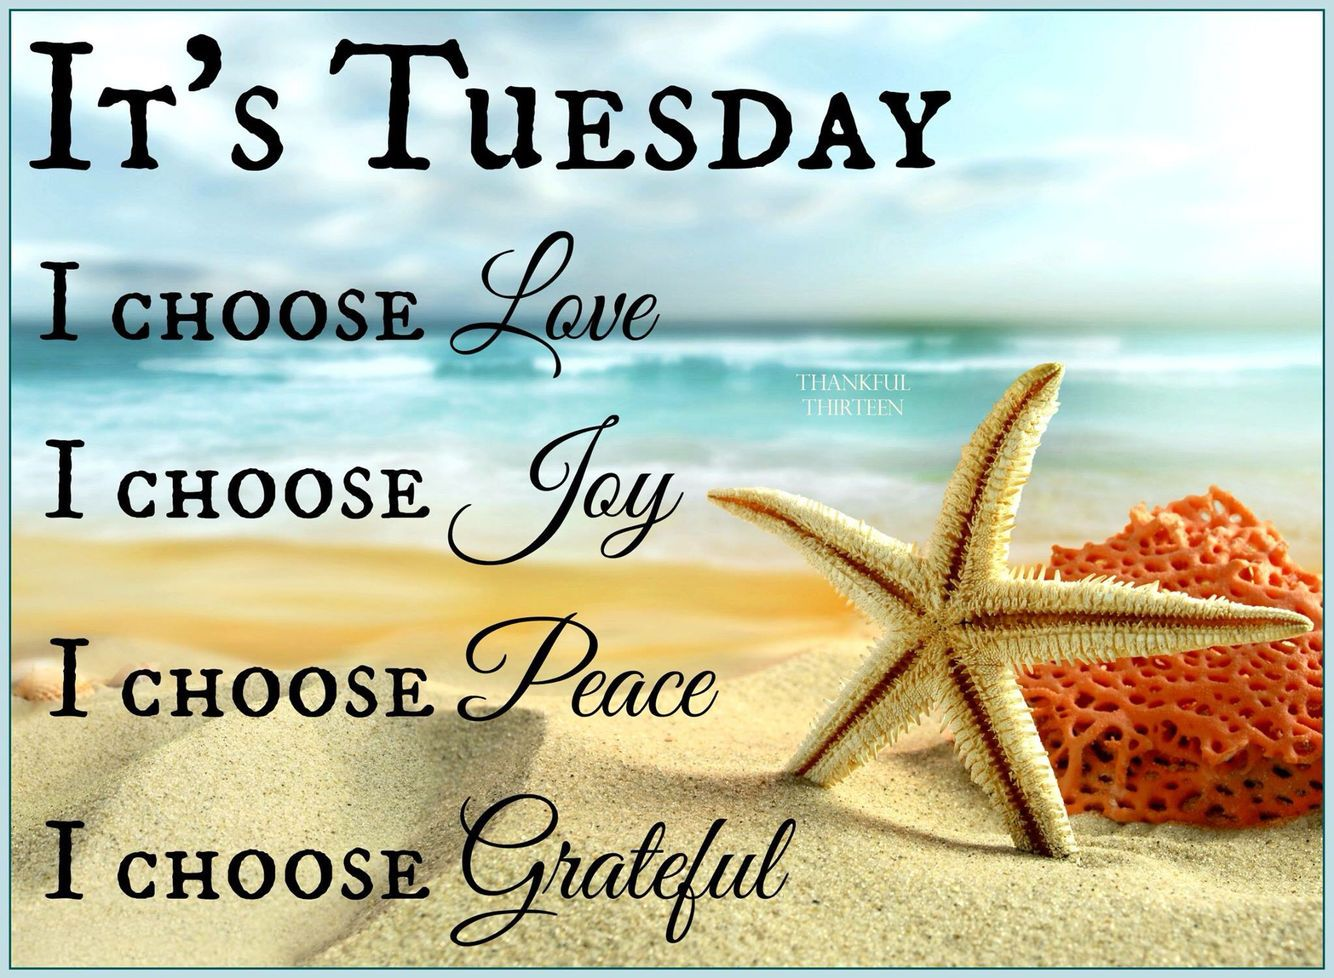 It's Tuesday | Happy tuesday quotes, Tuesday quotes, Happy tuesday morning